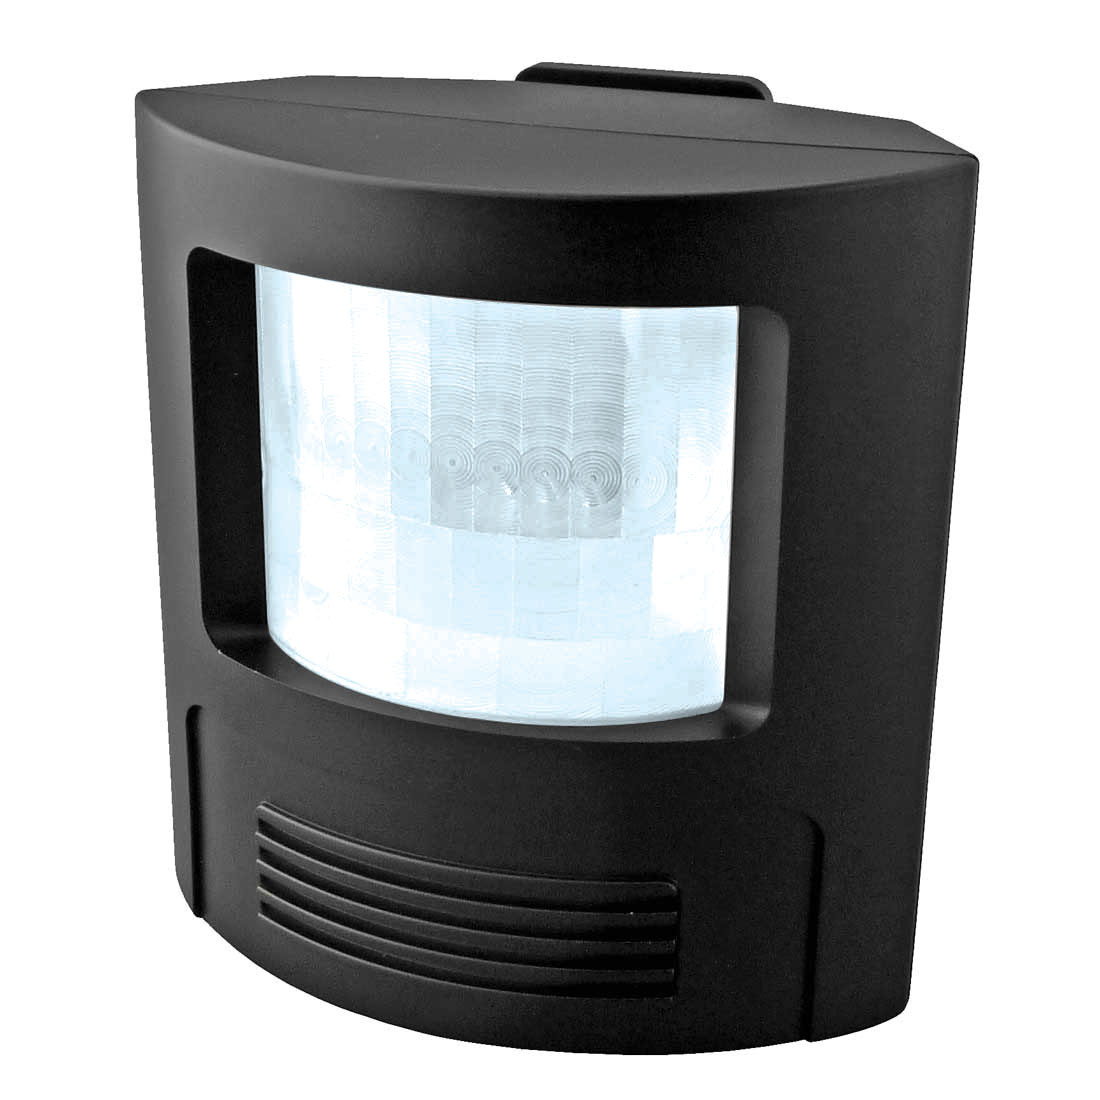 The Door Beacon - Door Knock Sensor Price: $29.70